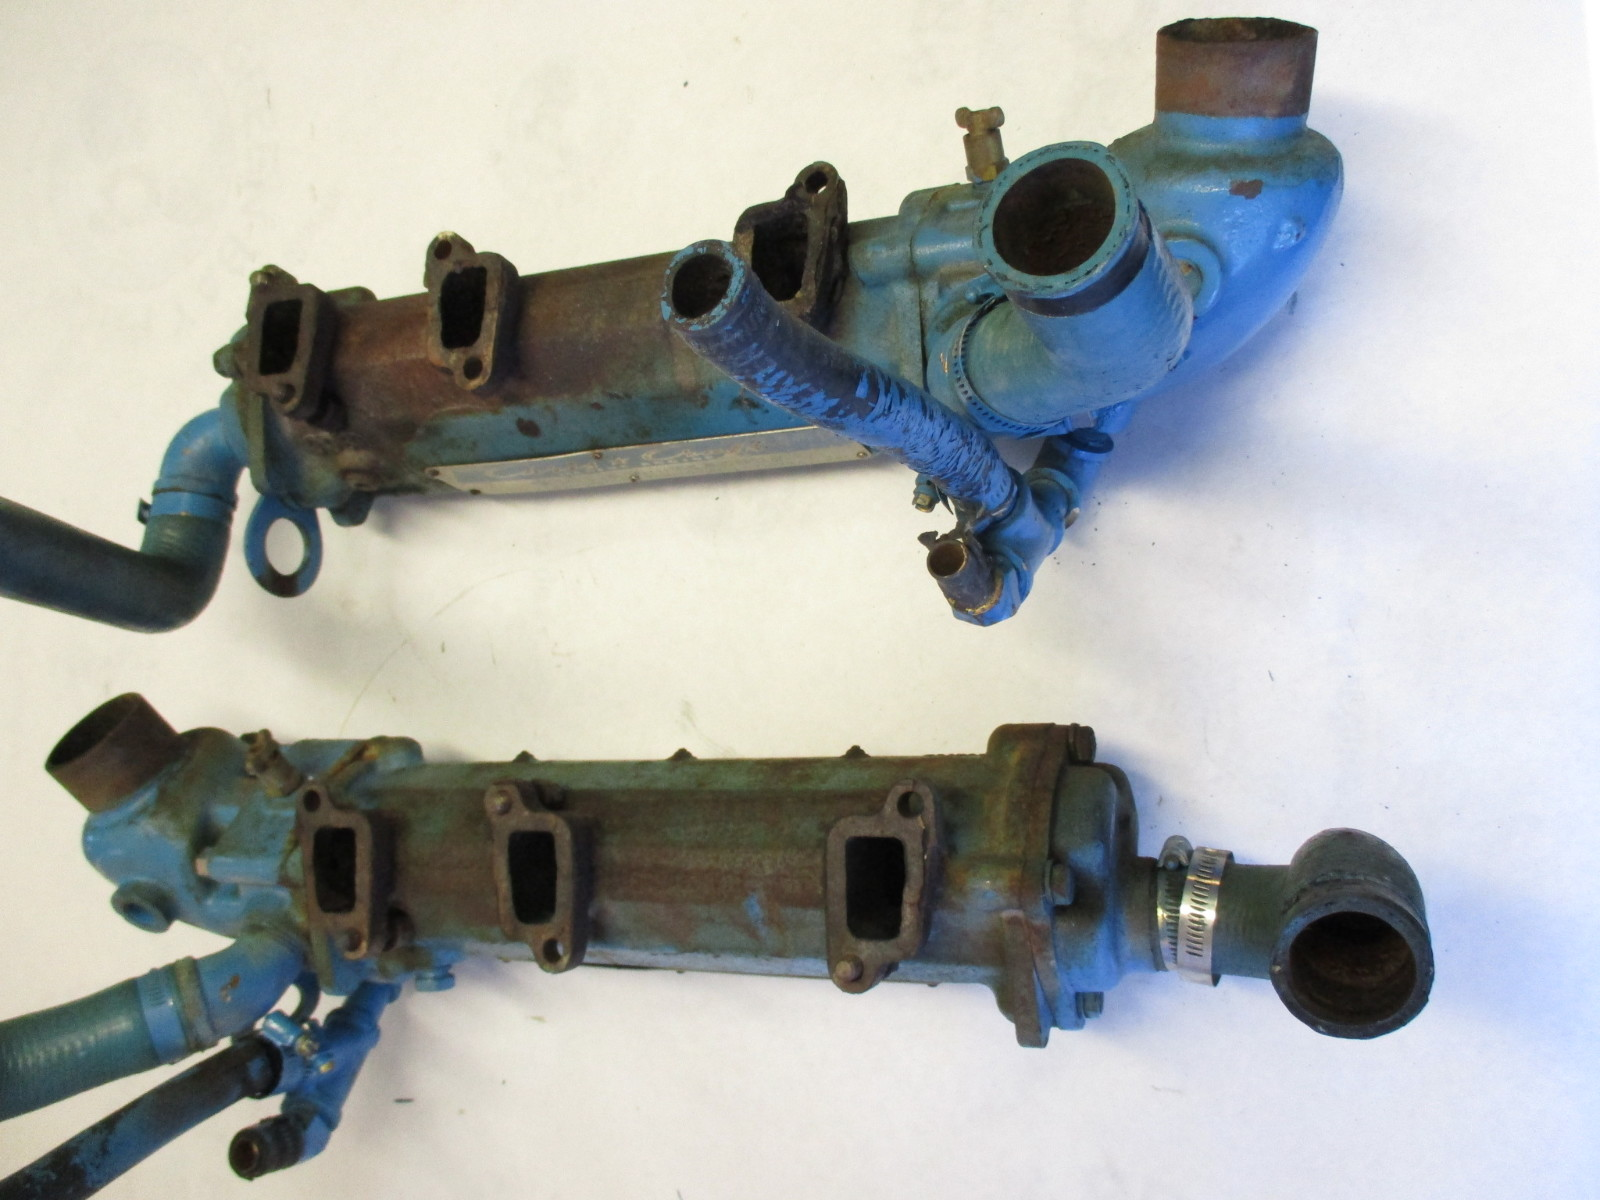 1960s Exhaust Manifold Omc Chris Craft Buick V6 Engine 306662 Block Casting Numbers Model 225